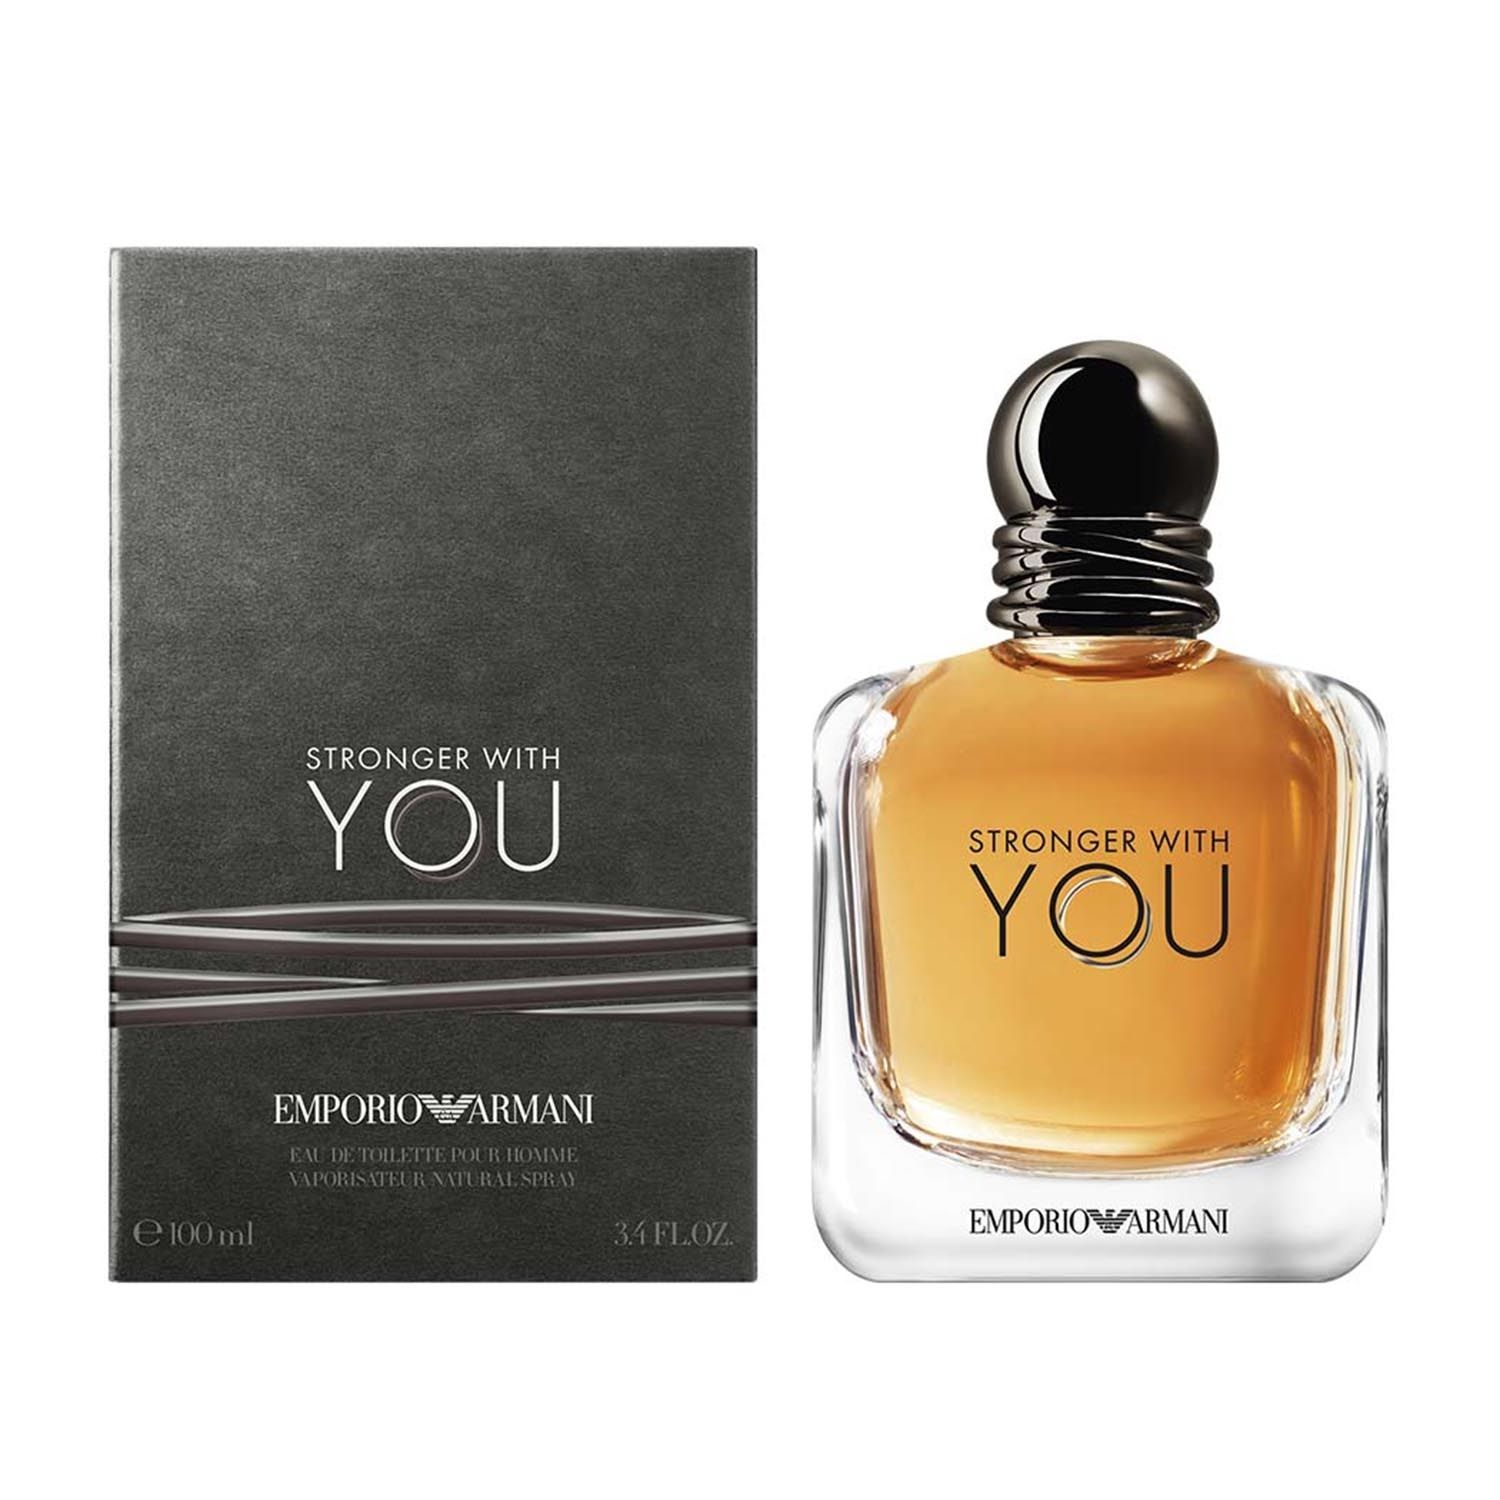 giorgio-armani-stronger-with-you-eau-de-toilette-pour-homme-100m